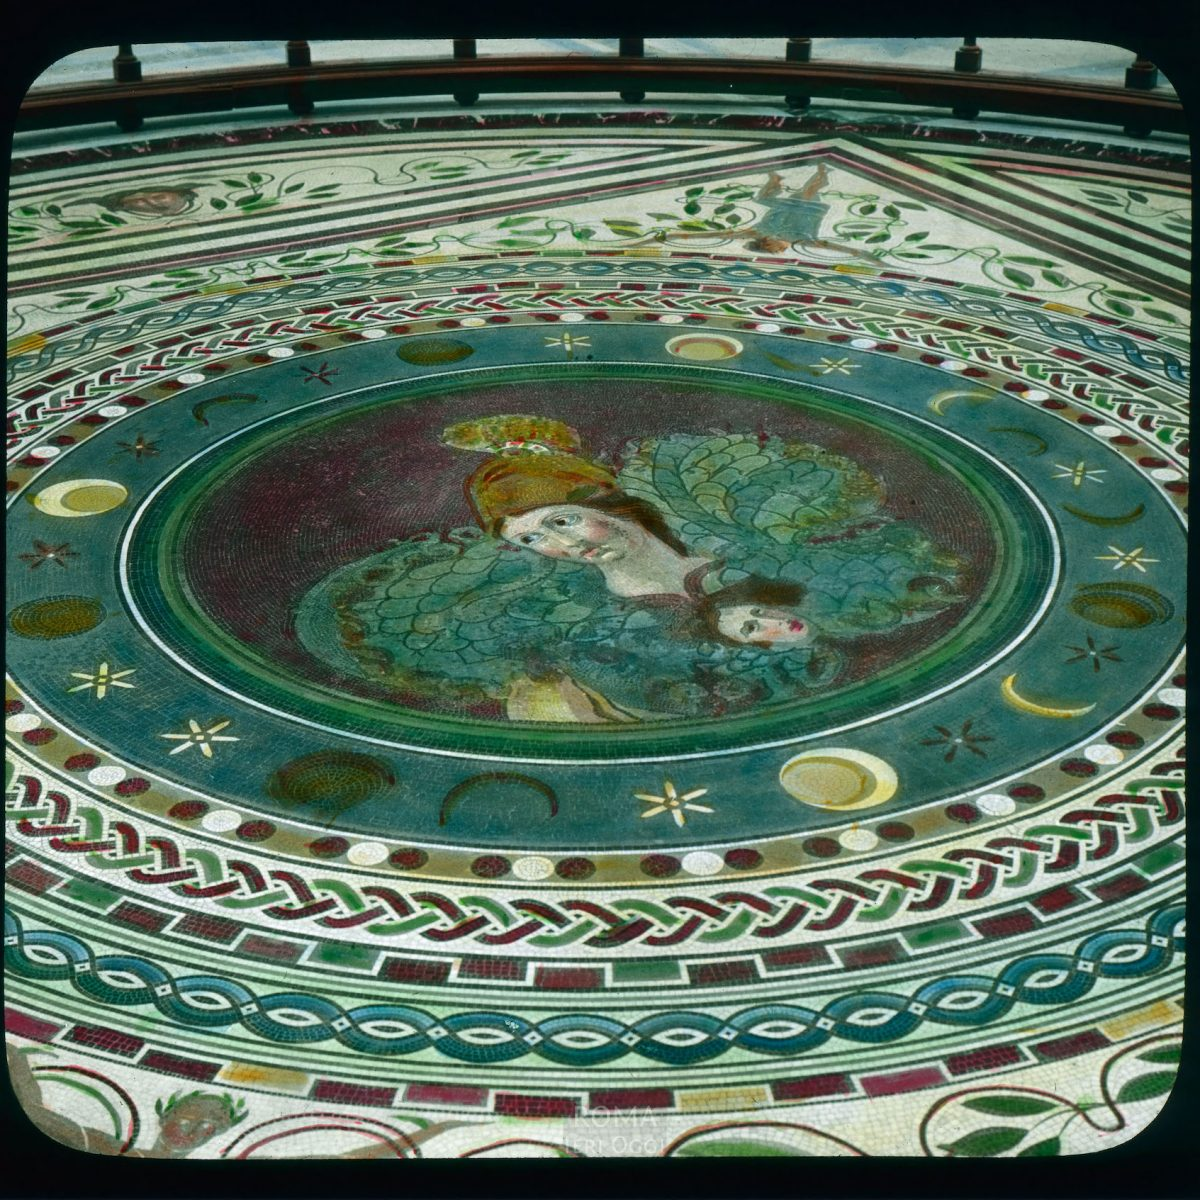 Vatican City. Vatican Museum, Museo Pio-Clementino: mosaic floor View in tinted lantern slide, ca. 1919-1938. The museum dates from ca. 1771.